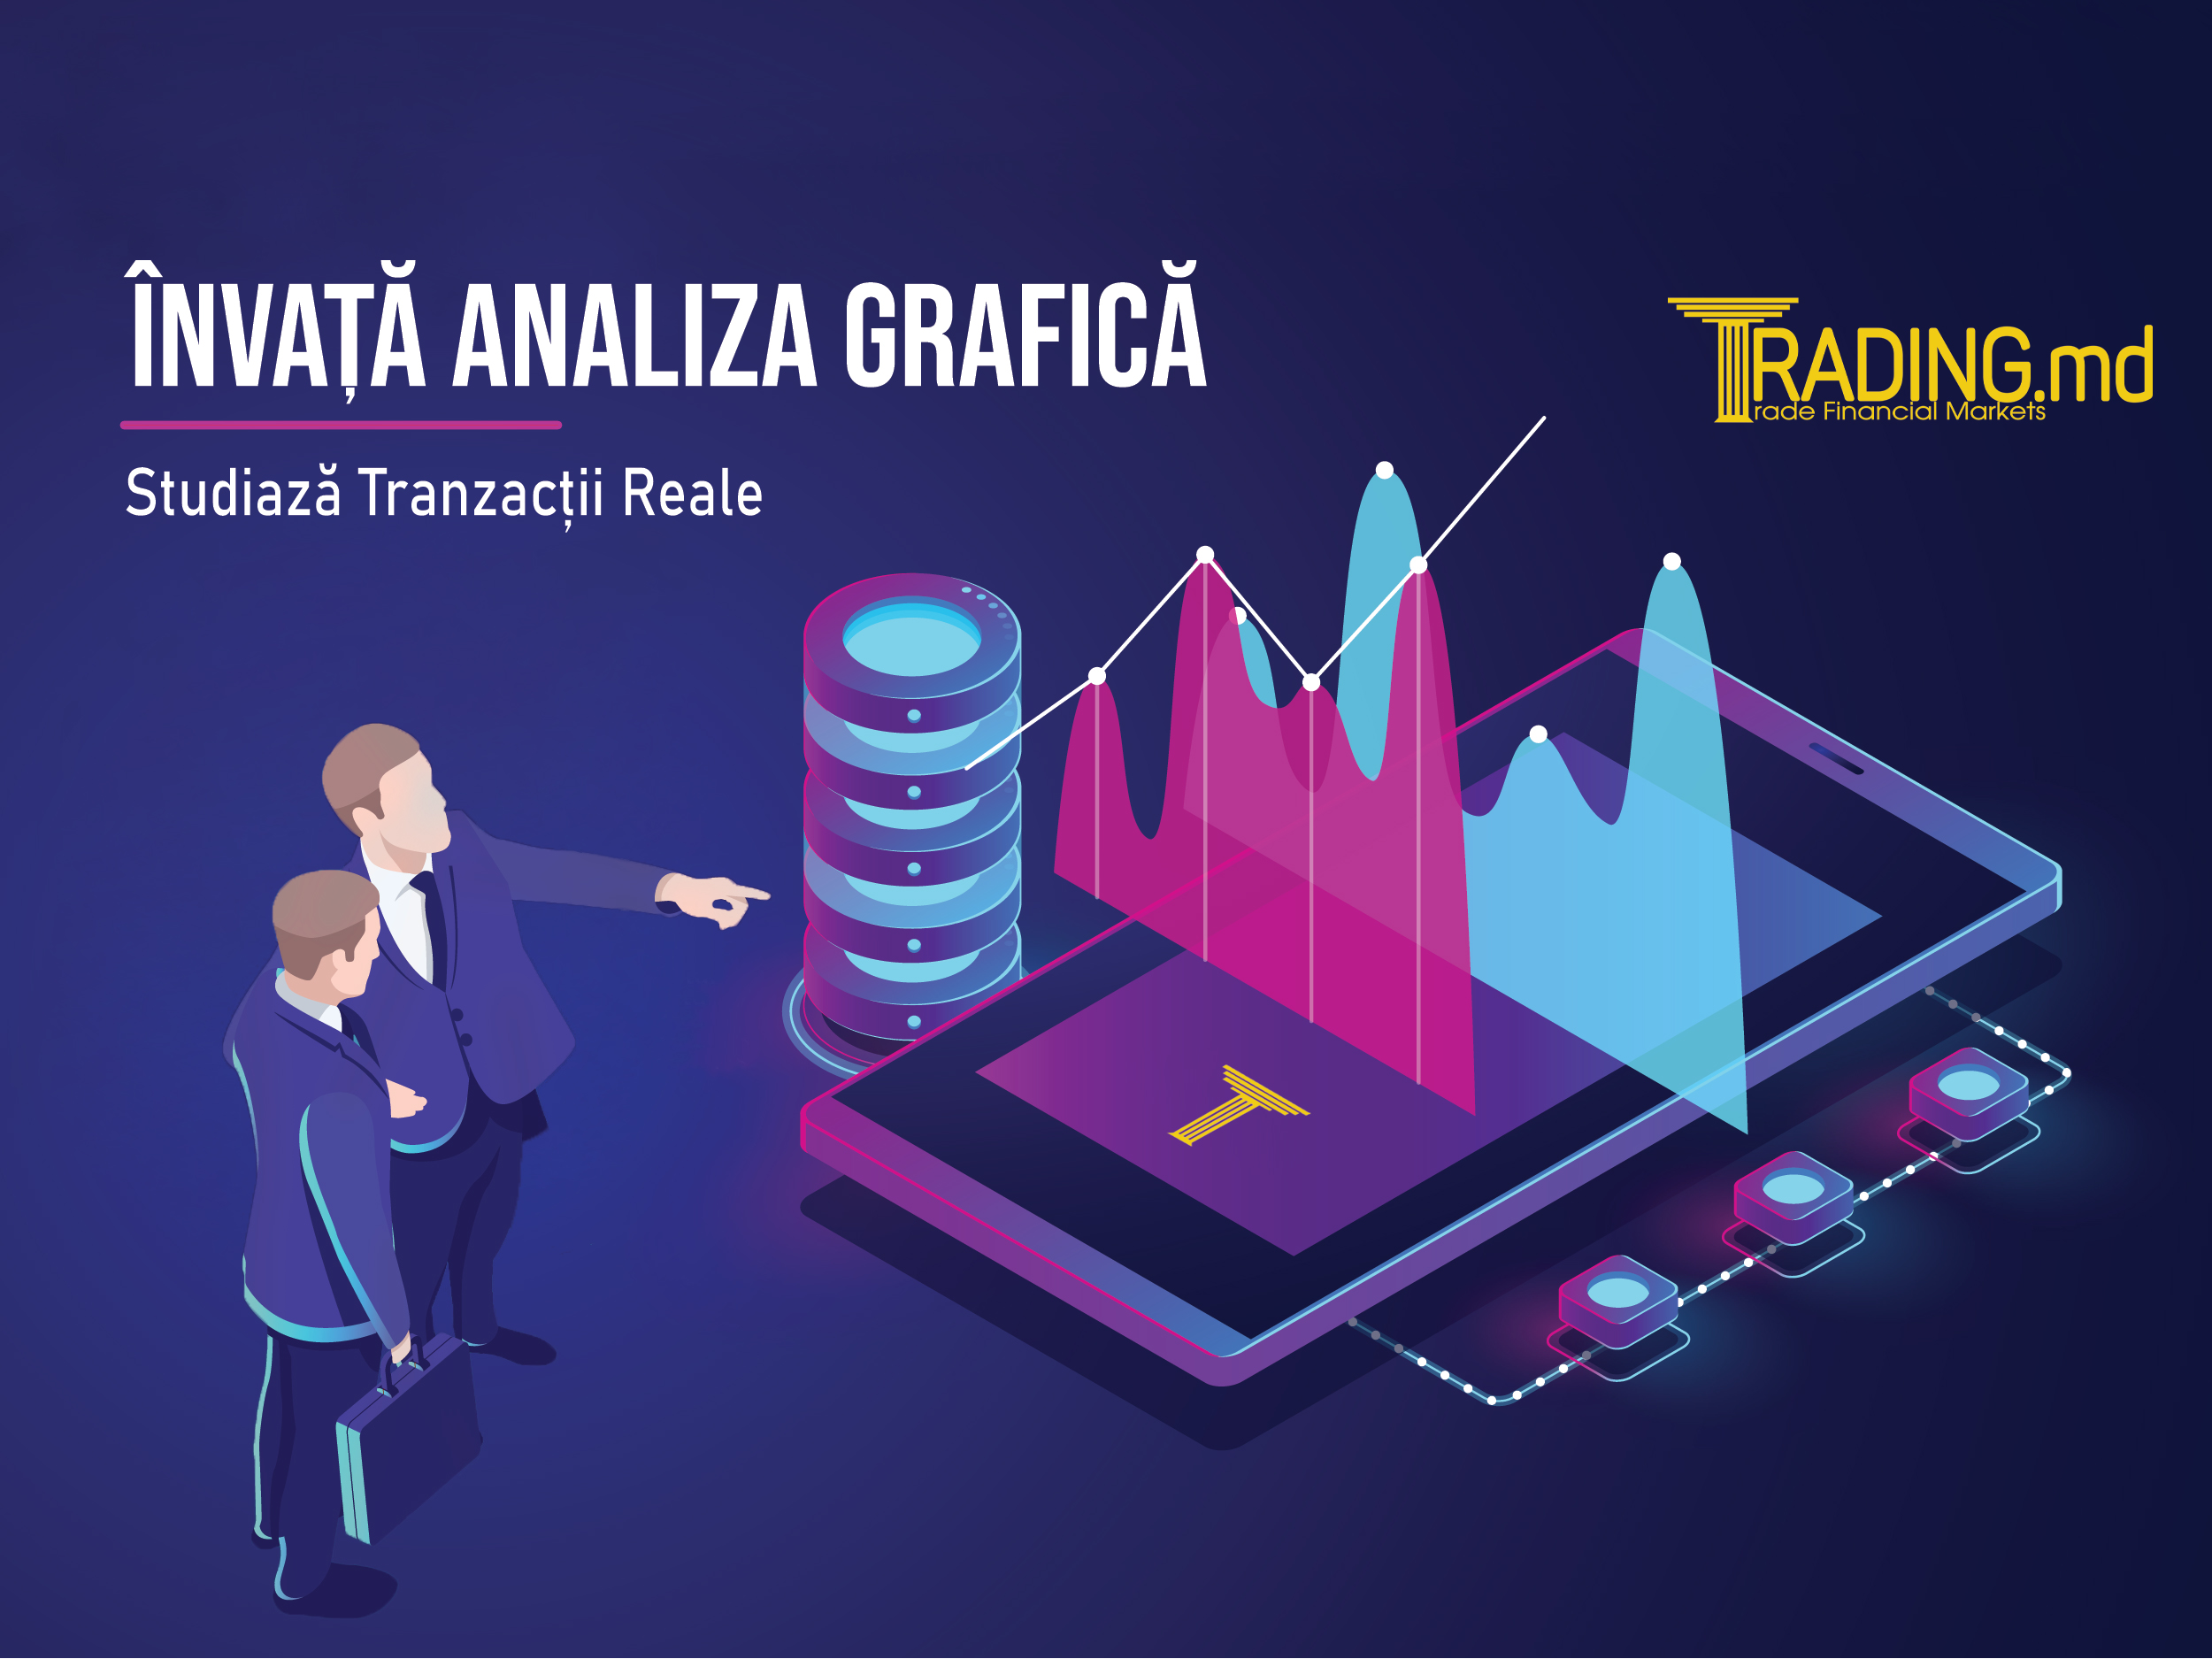 Tranzactii Reale Trading.md